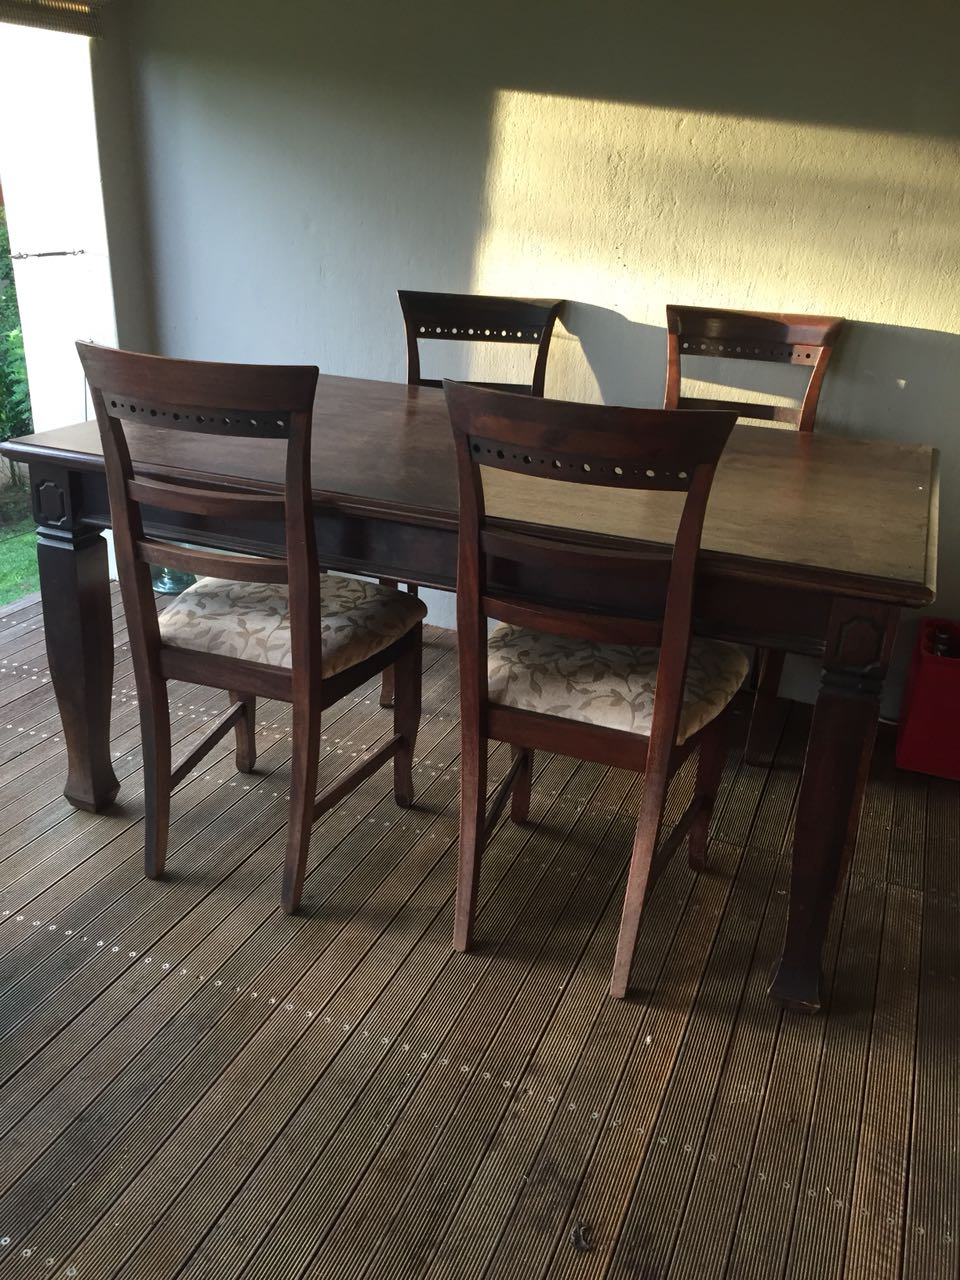 Wetherlys 6 Seater Dining Table and 4 x Dining Chairs